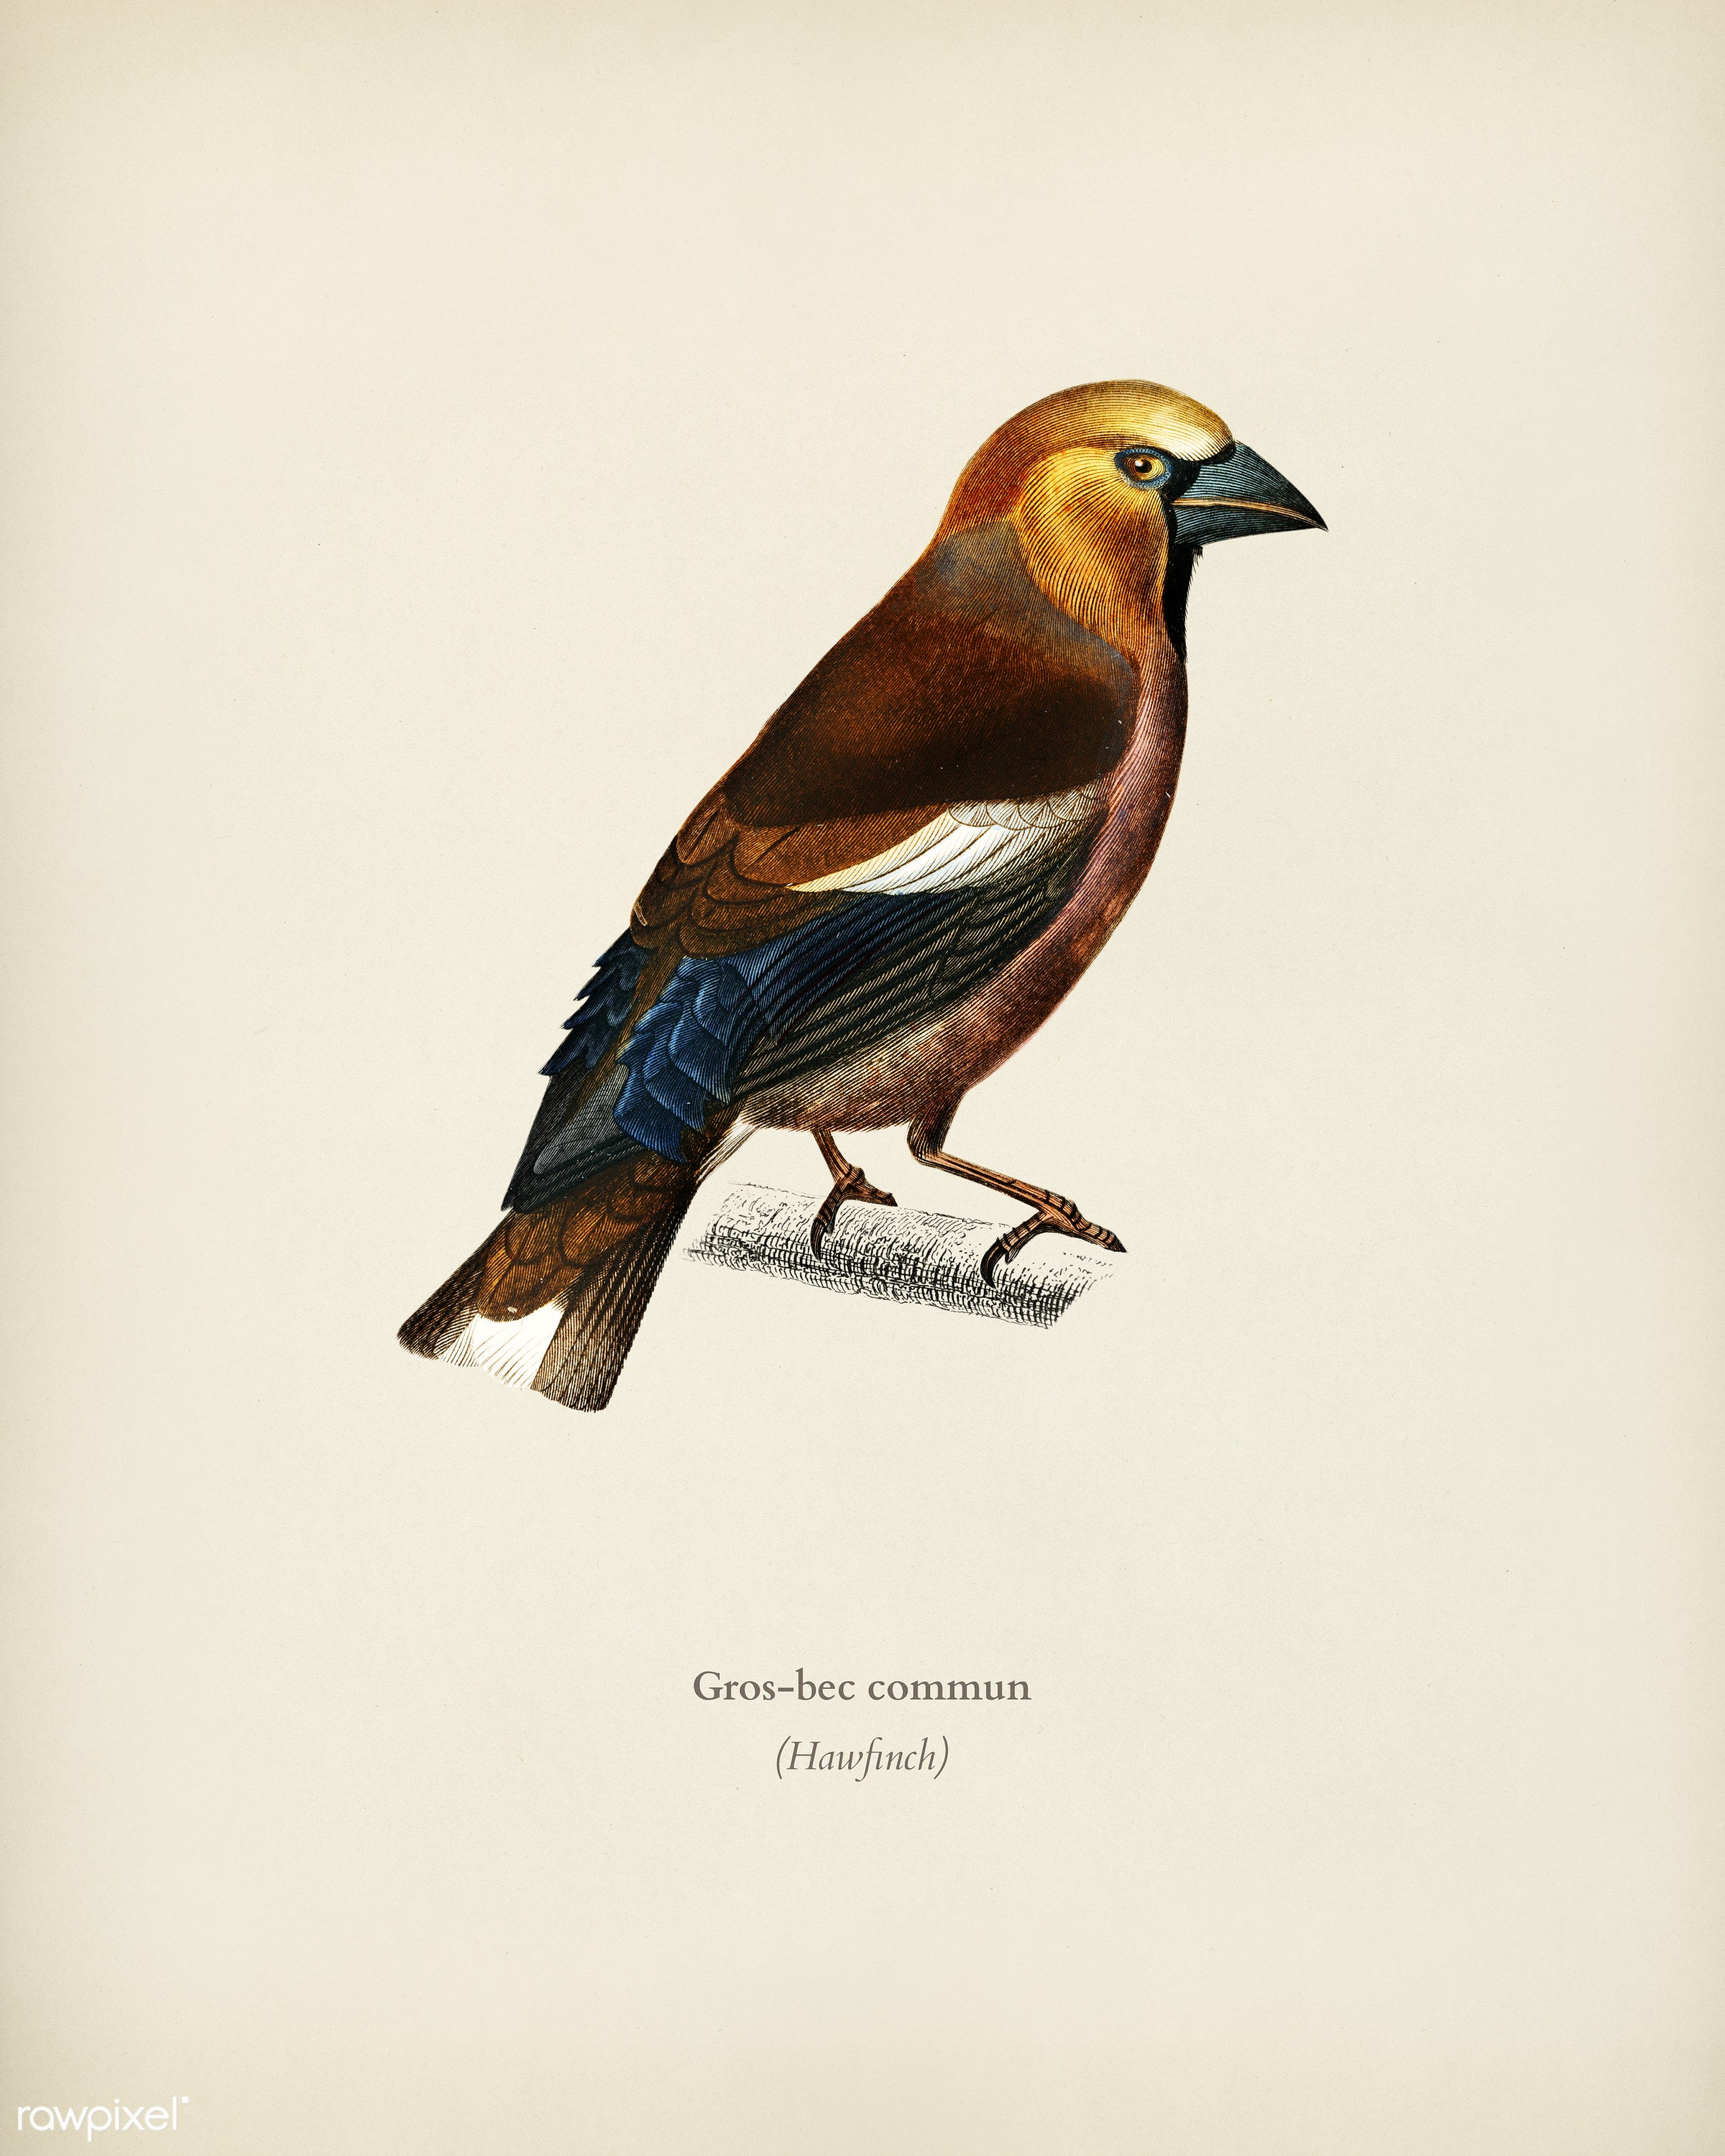 Hawfinch (Gros-bec commun) illustrated by Charles Dessalines D' Orbigny (1806-1876). Digitally enhanced from our own...